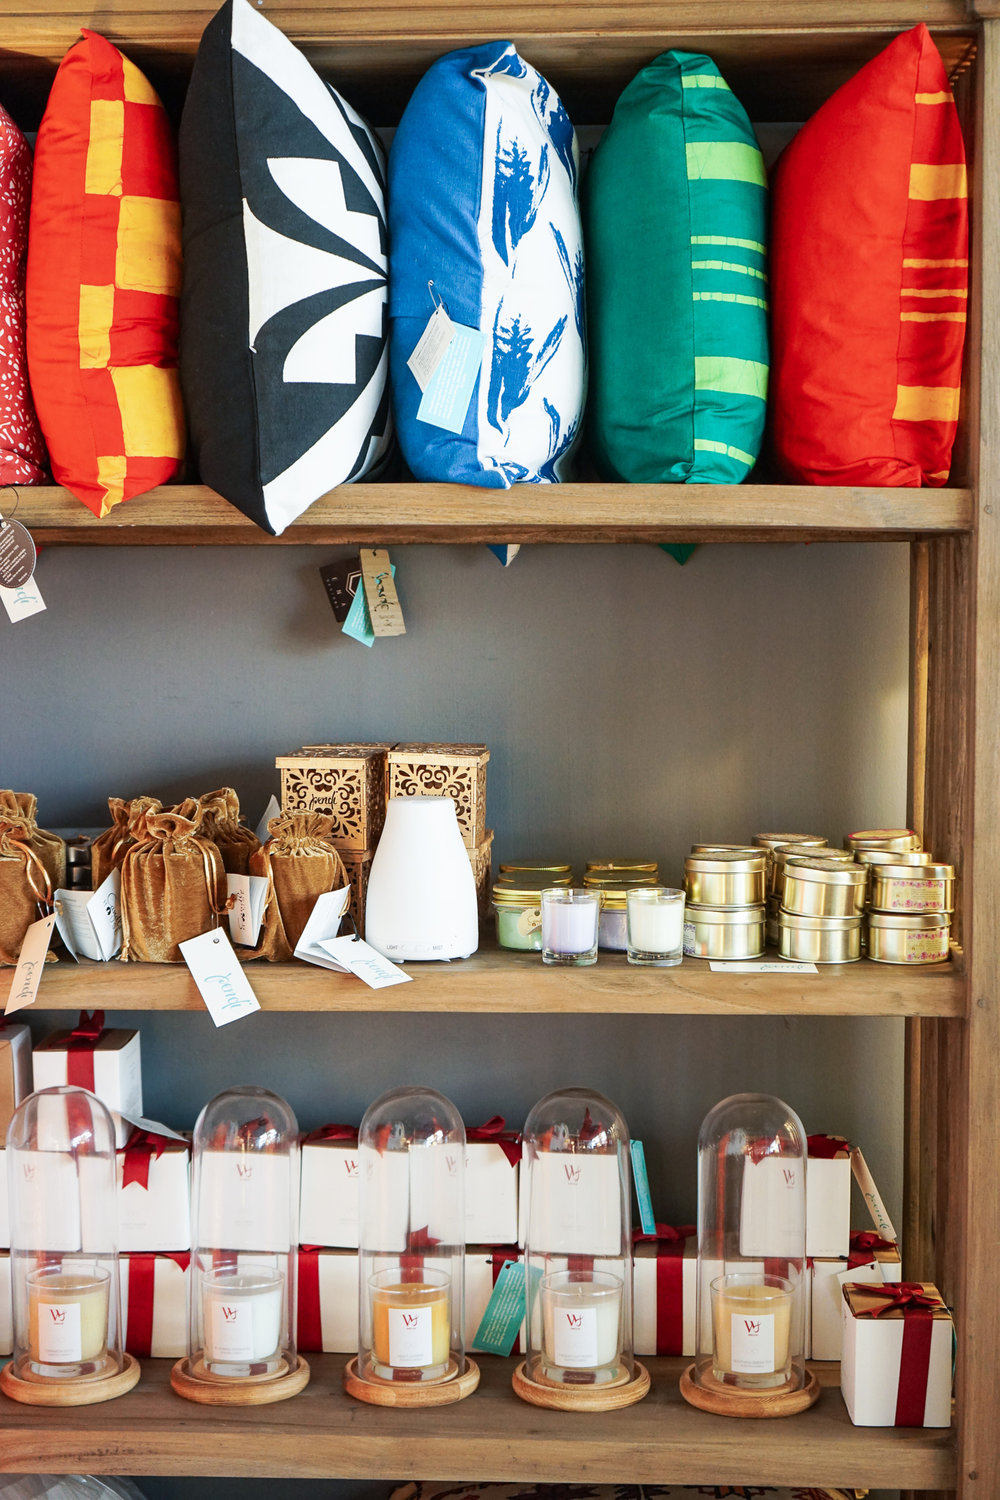 Colombo shopping guide - Pendi cushions and candles